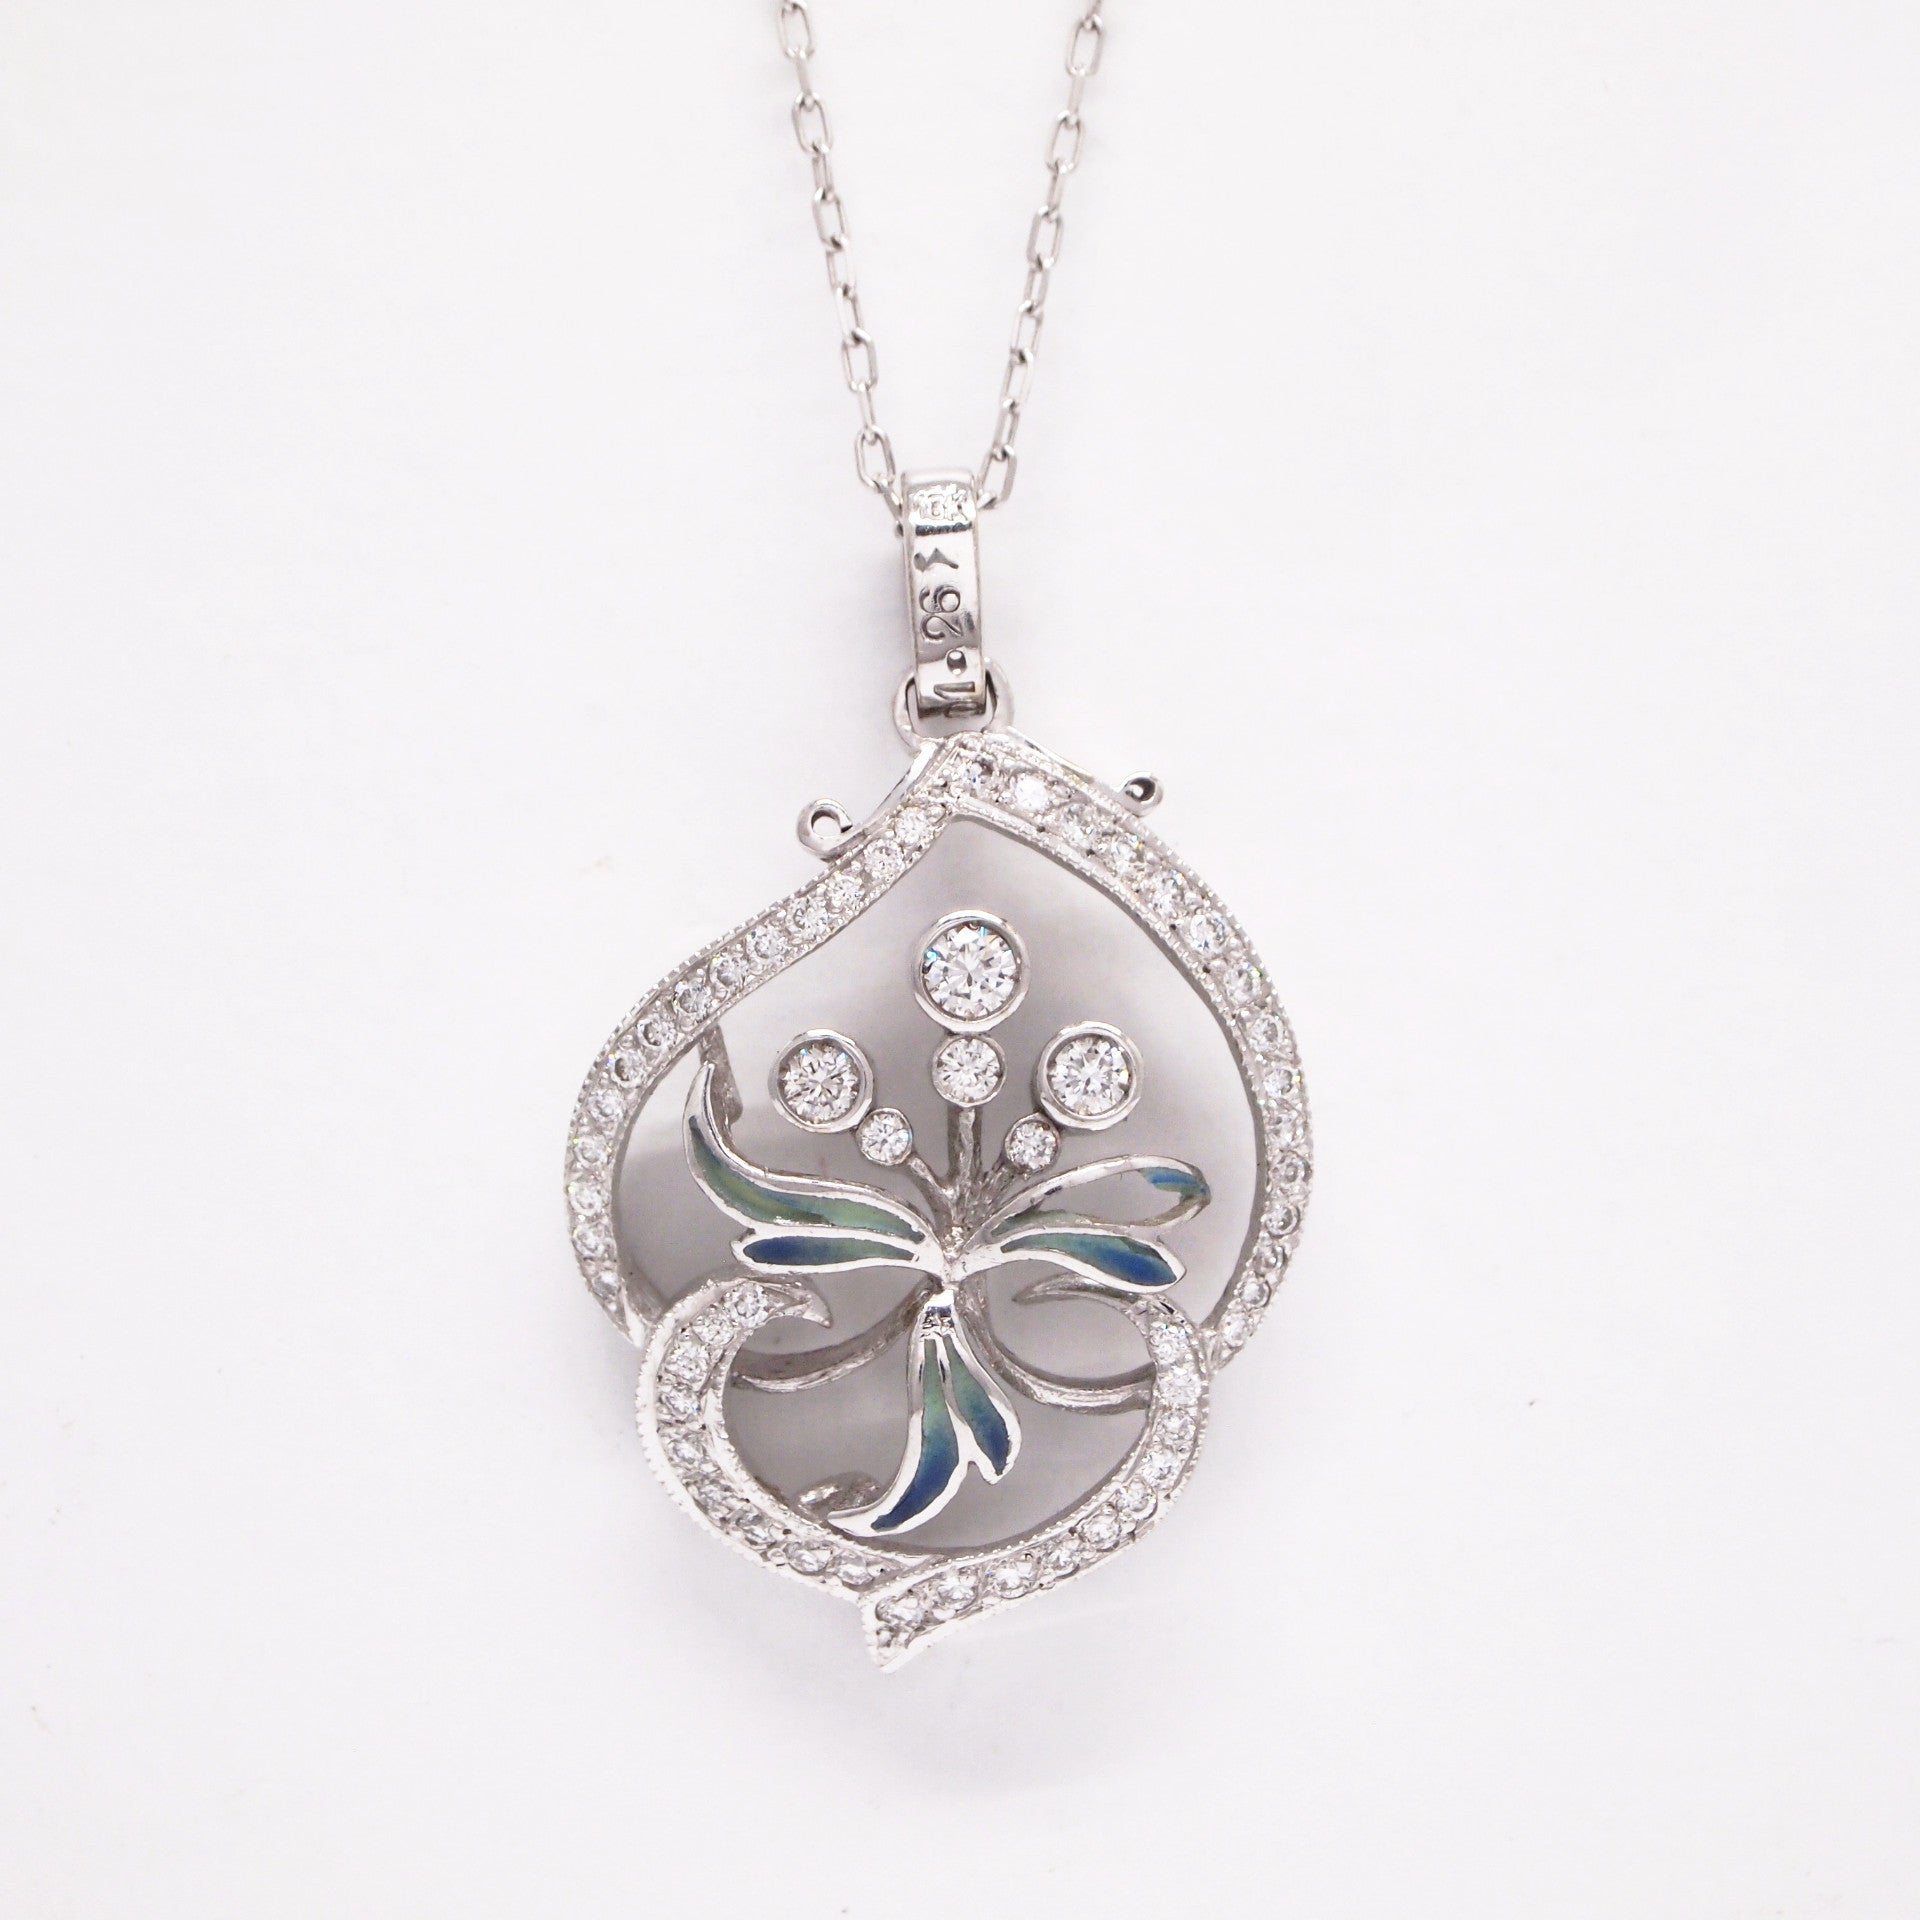 "Nouveau 1910 18k white gold ""Arctic collection"" pendant set with 59 round diamonds weighing a total of 0.93 carats."